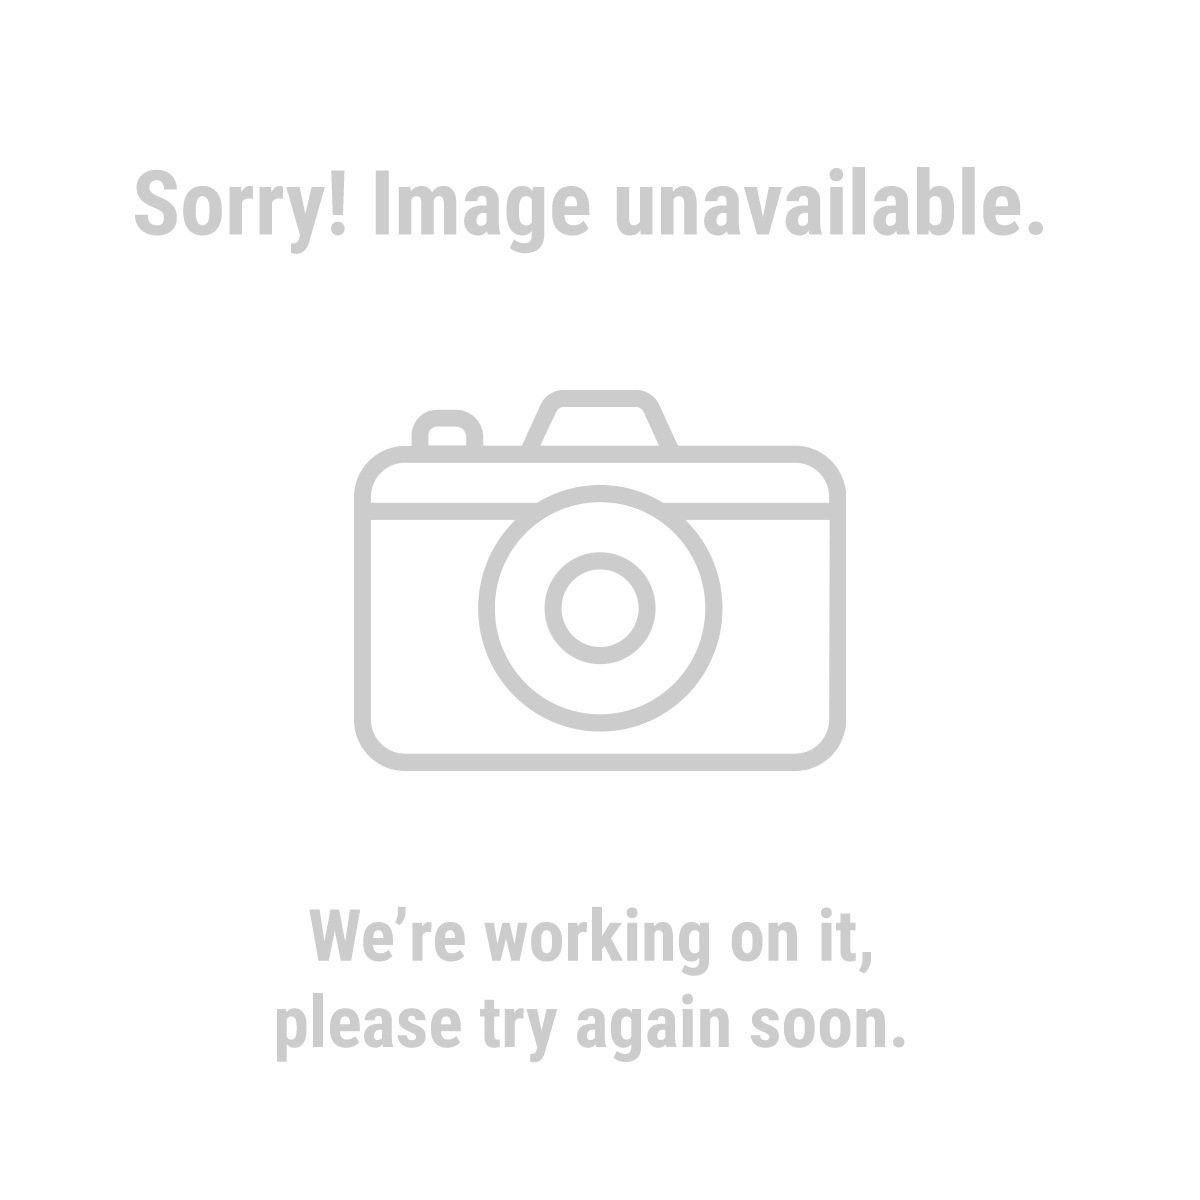 HFT 60437 2 Piece Microfiber Exterior Car Duster Set